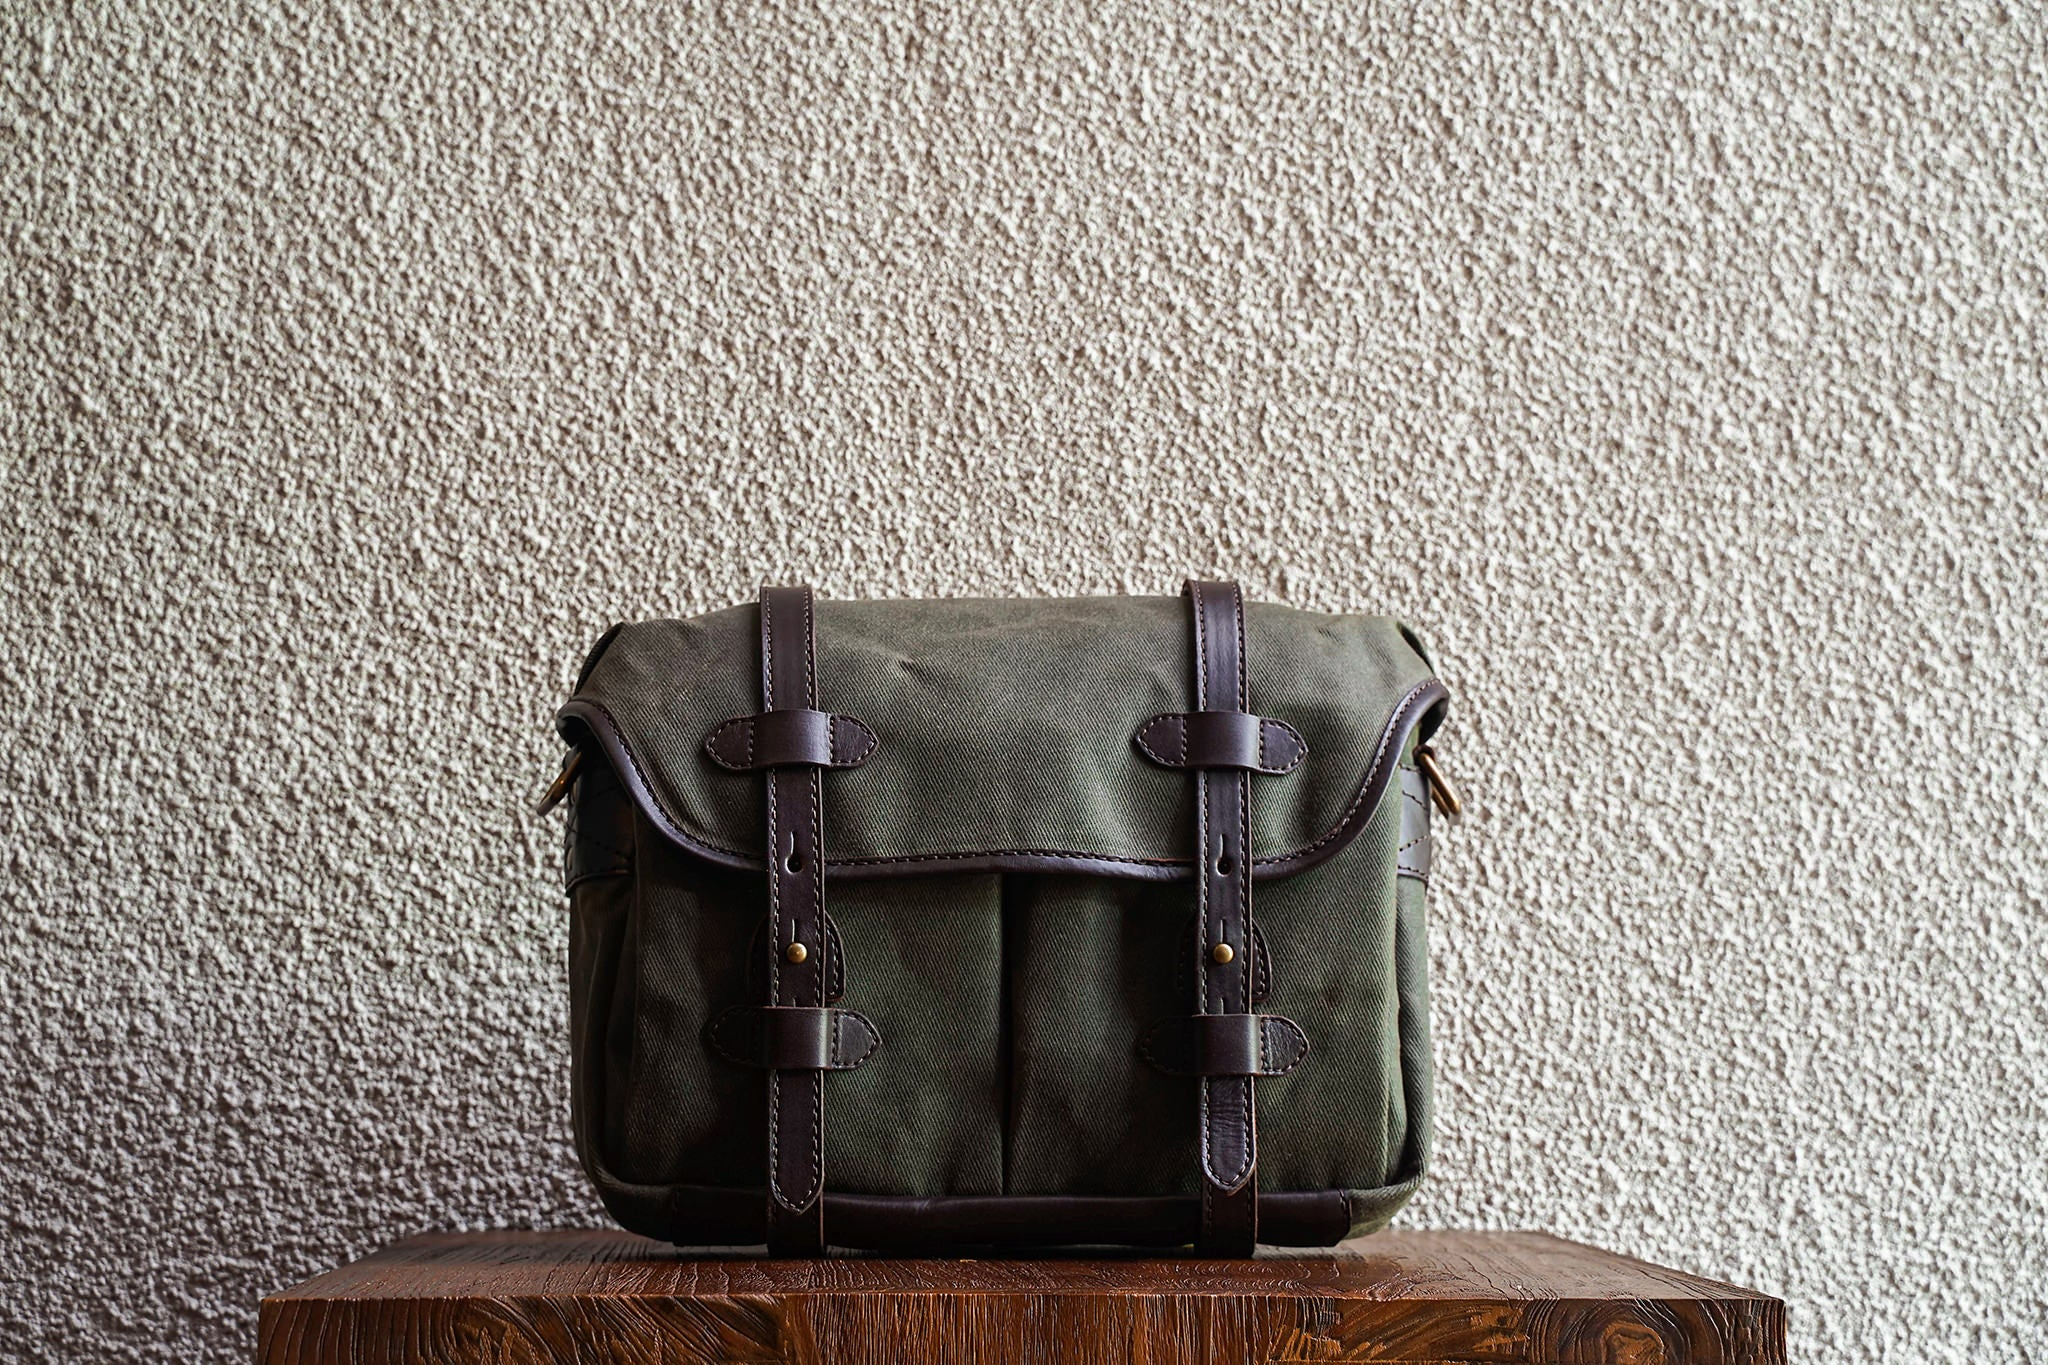 Our bags are made from as few material pieces as possible. Fewer seams makes for a stronger bag.